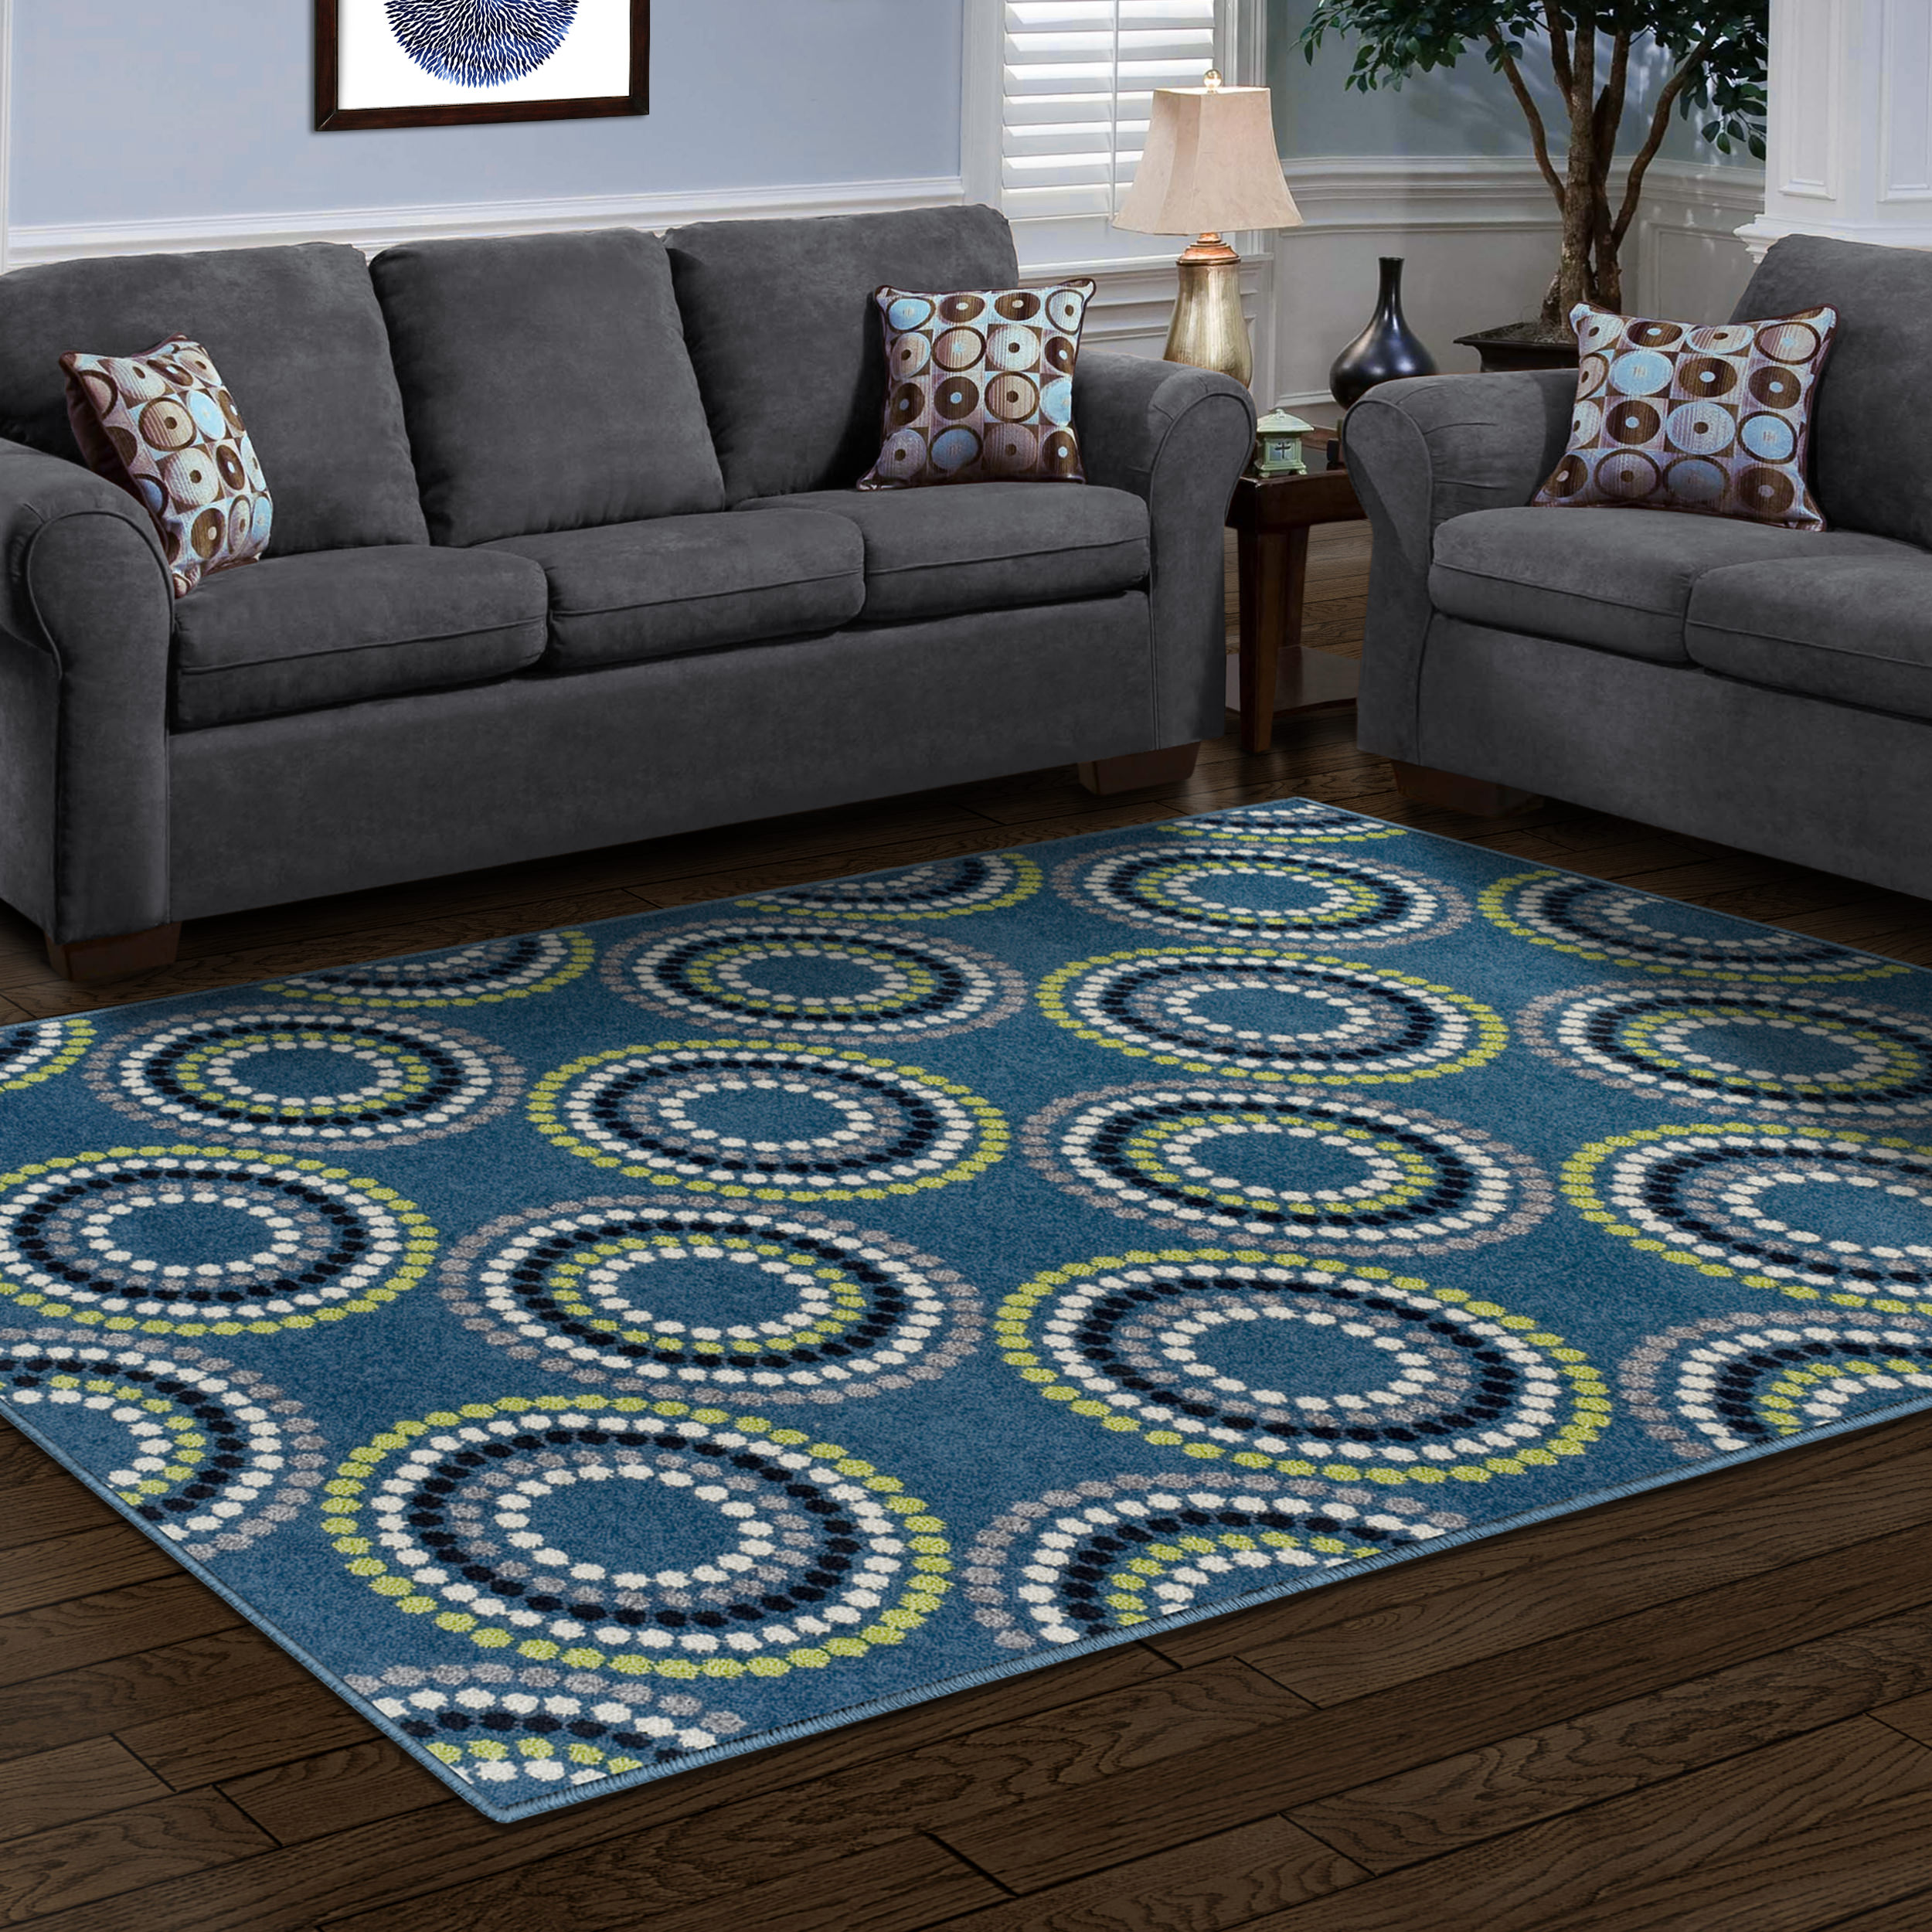 affordable area rugs. Superior Burgess Collection, 6mm Pile Height With Jute Backing, Quality And Affordable Area Rugs, 8\u0027 X 10\u0027 Blue - Walmart.com Rugs